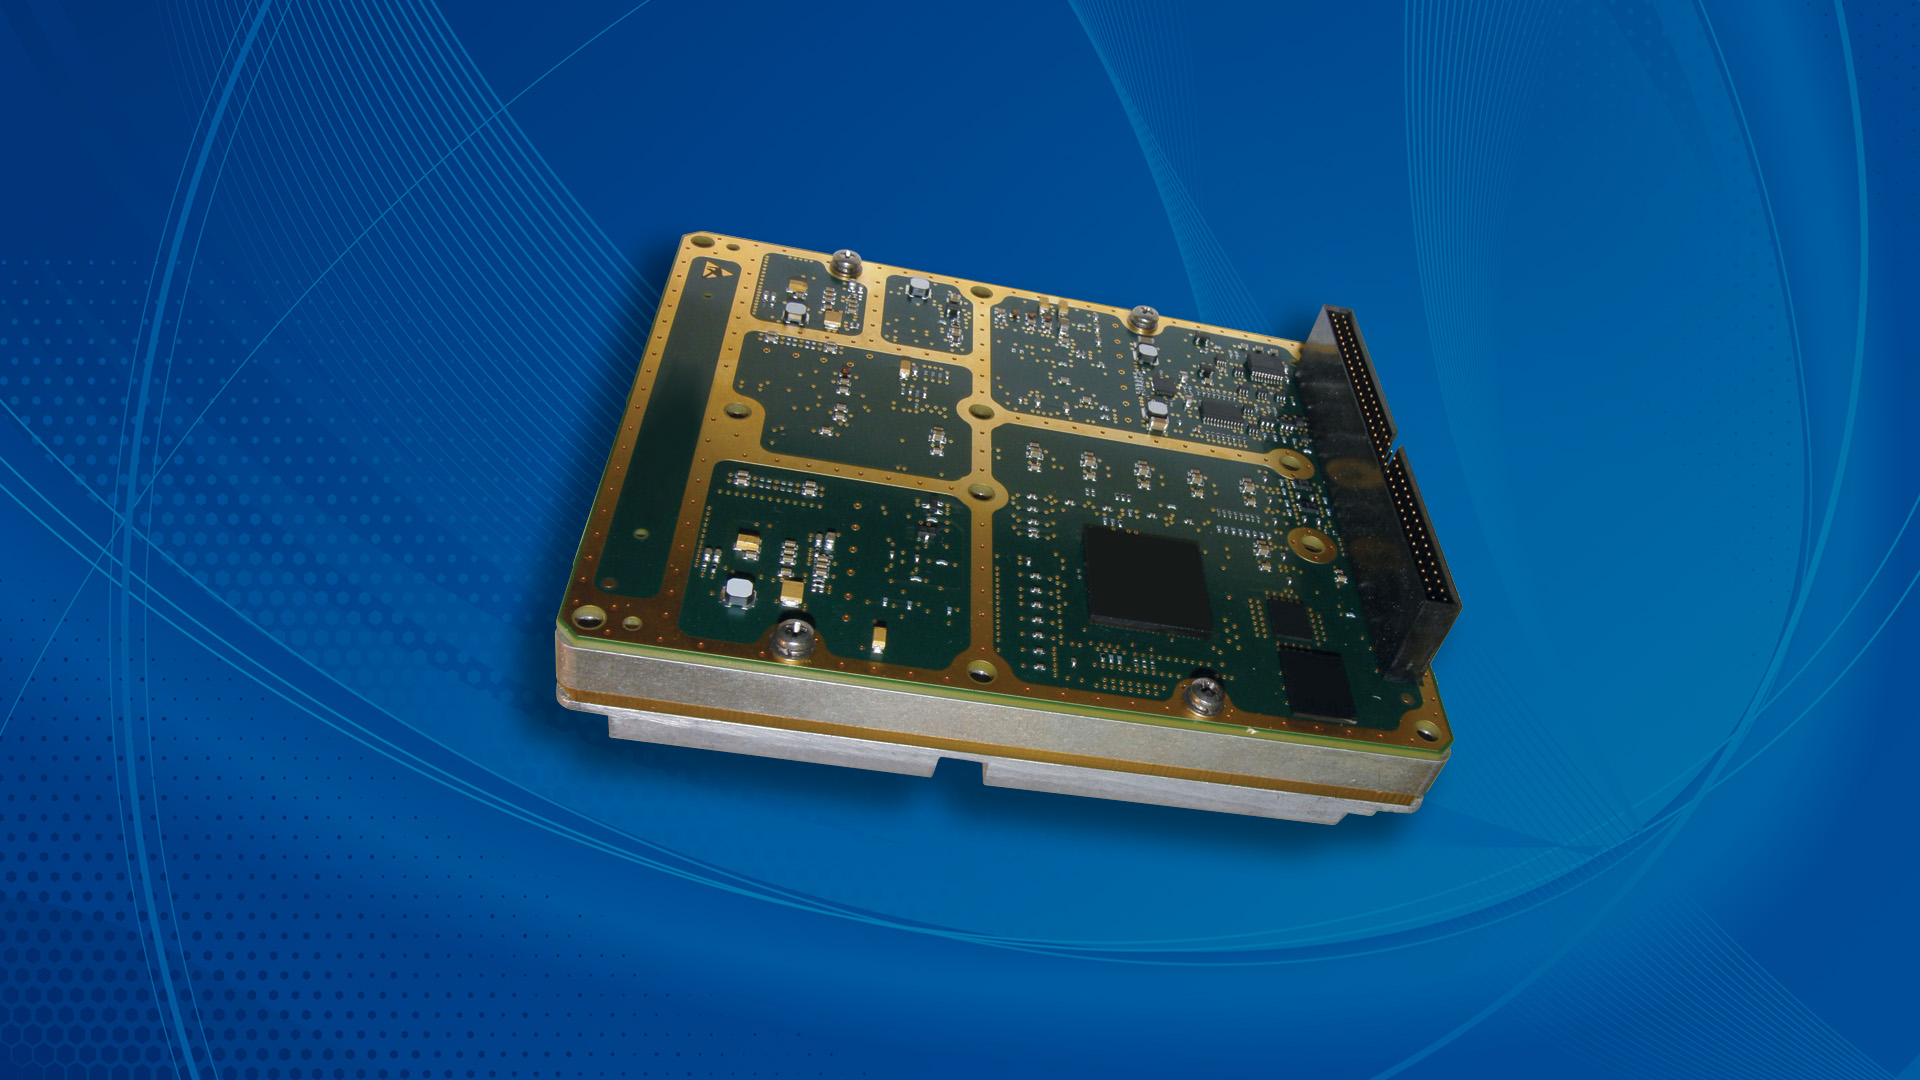 Image of the IGAS board